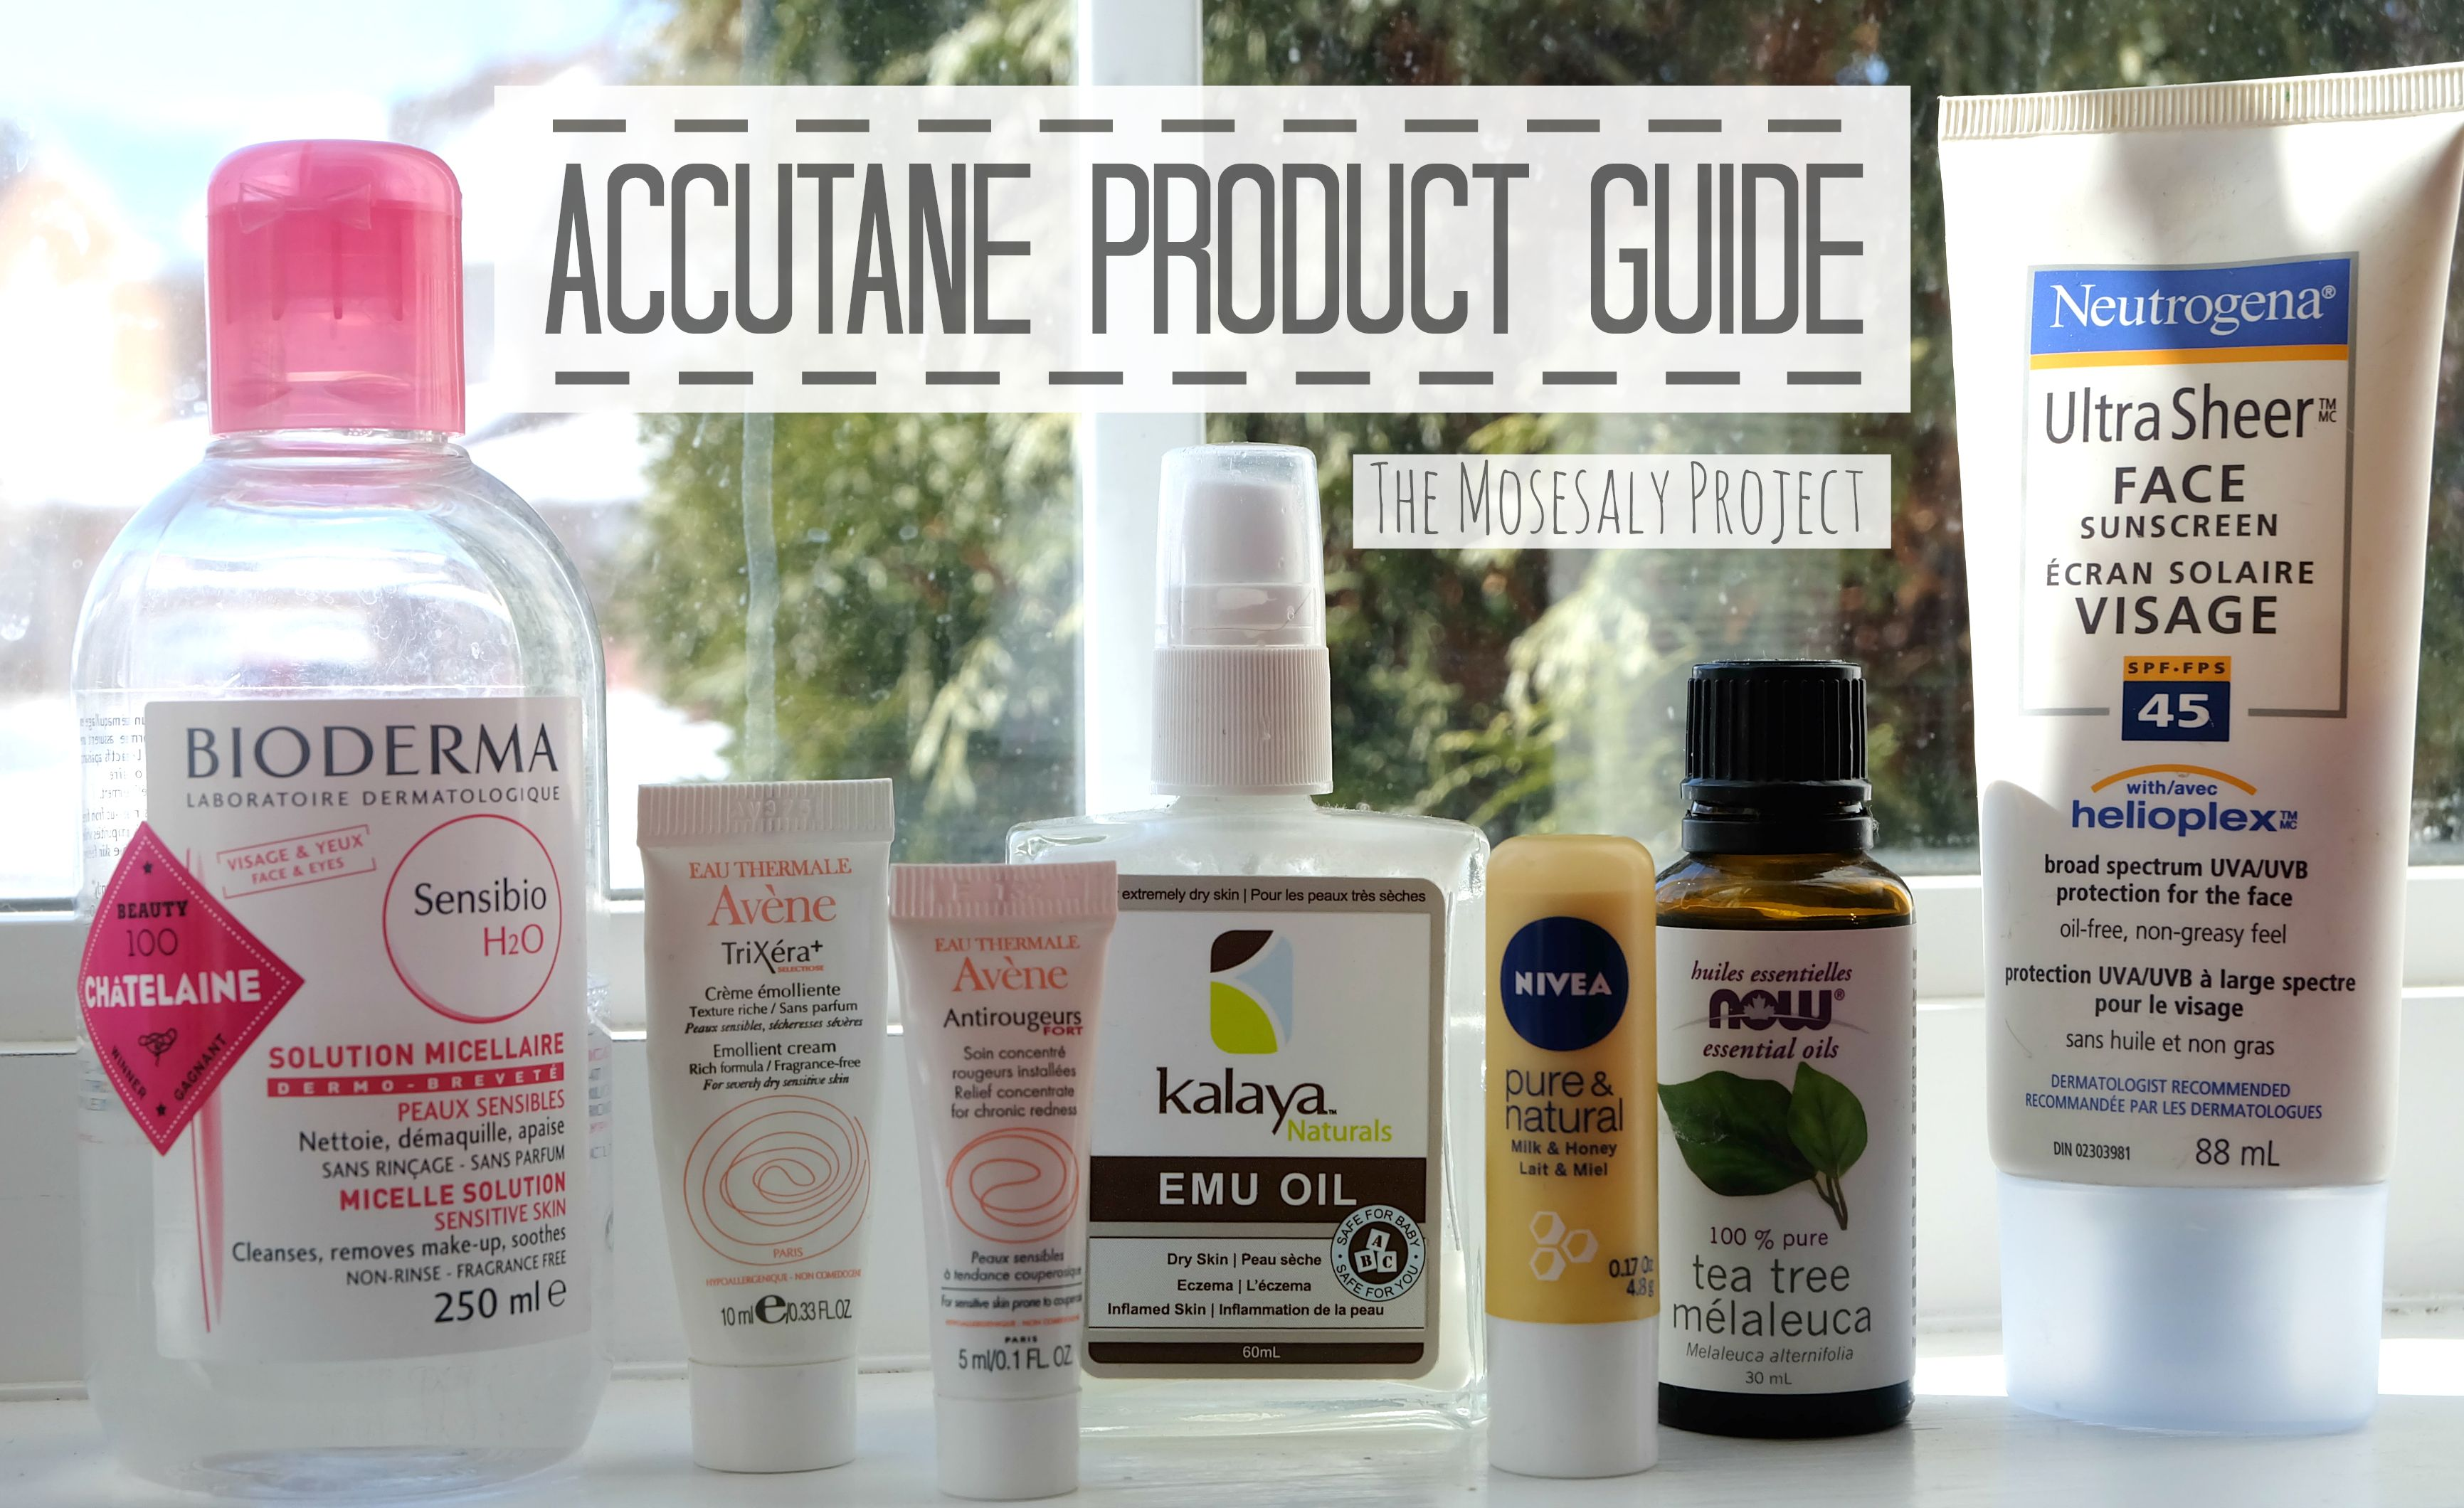 Accutane Product Guide For Those Who Those Who Have Acne Or Those Who Have Dry Skin Looking Tea Tree Oil For Acne Dry Skin Care Remedies Tea Tree Oil Benefits